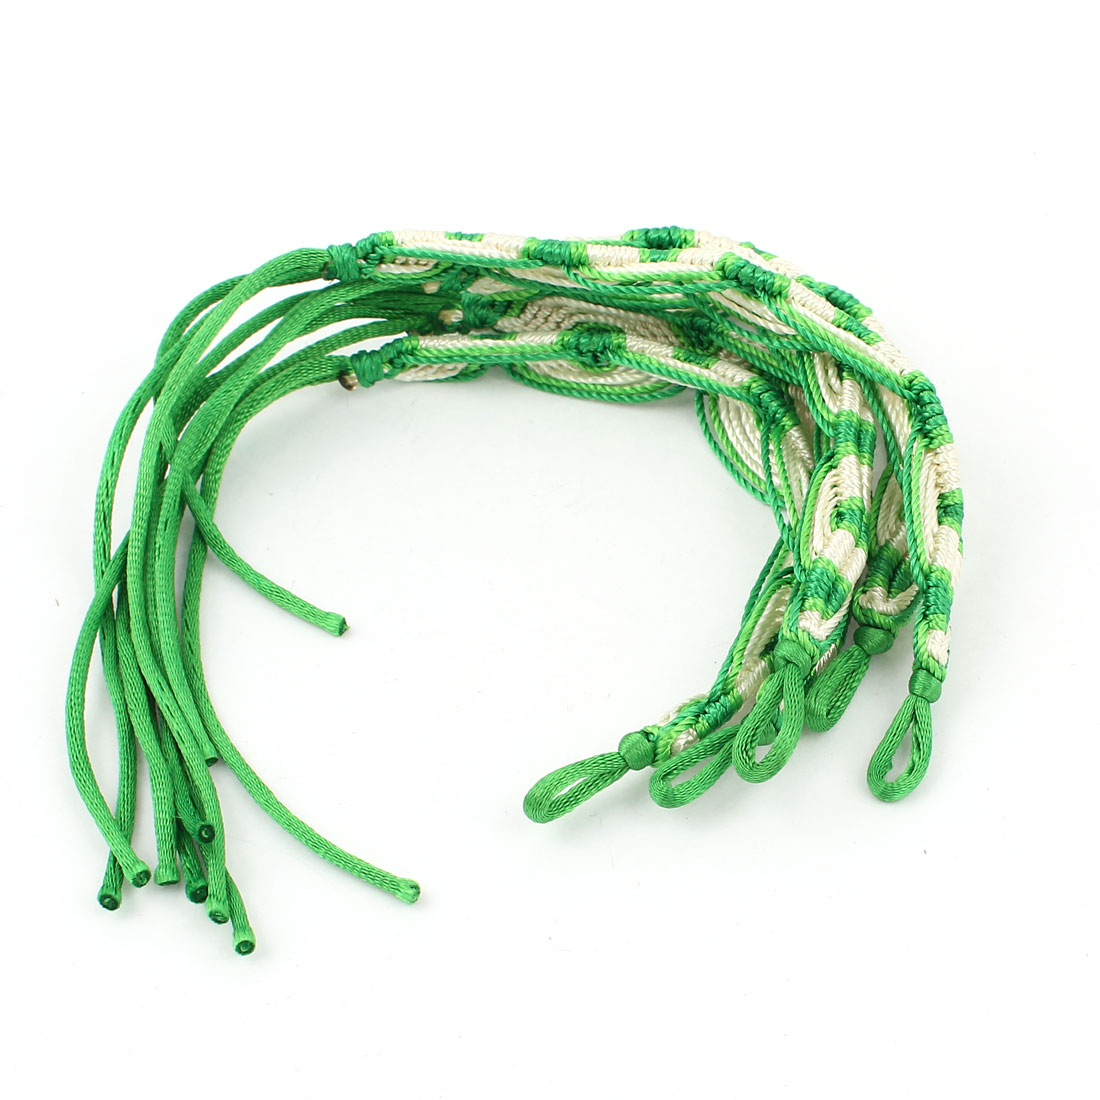 5 Pcs Green Beige Nylon Cord Handwork Braided Wrist Accent Bracelet for Lady